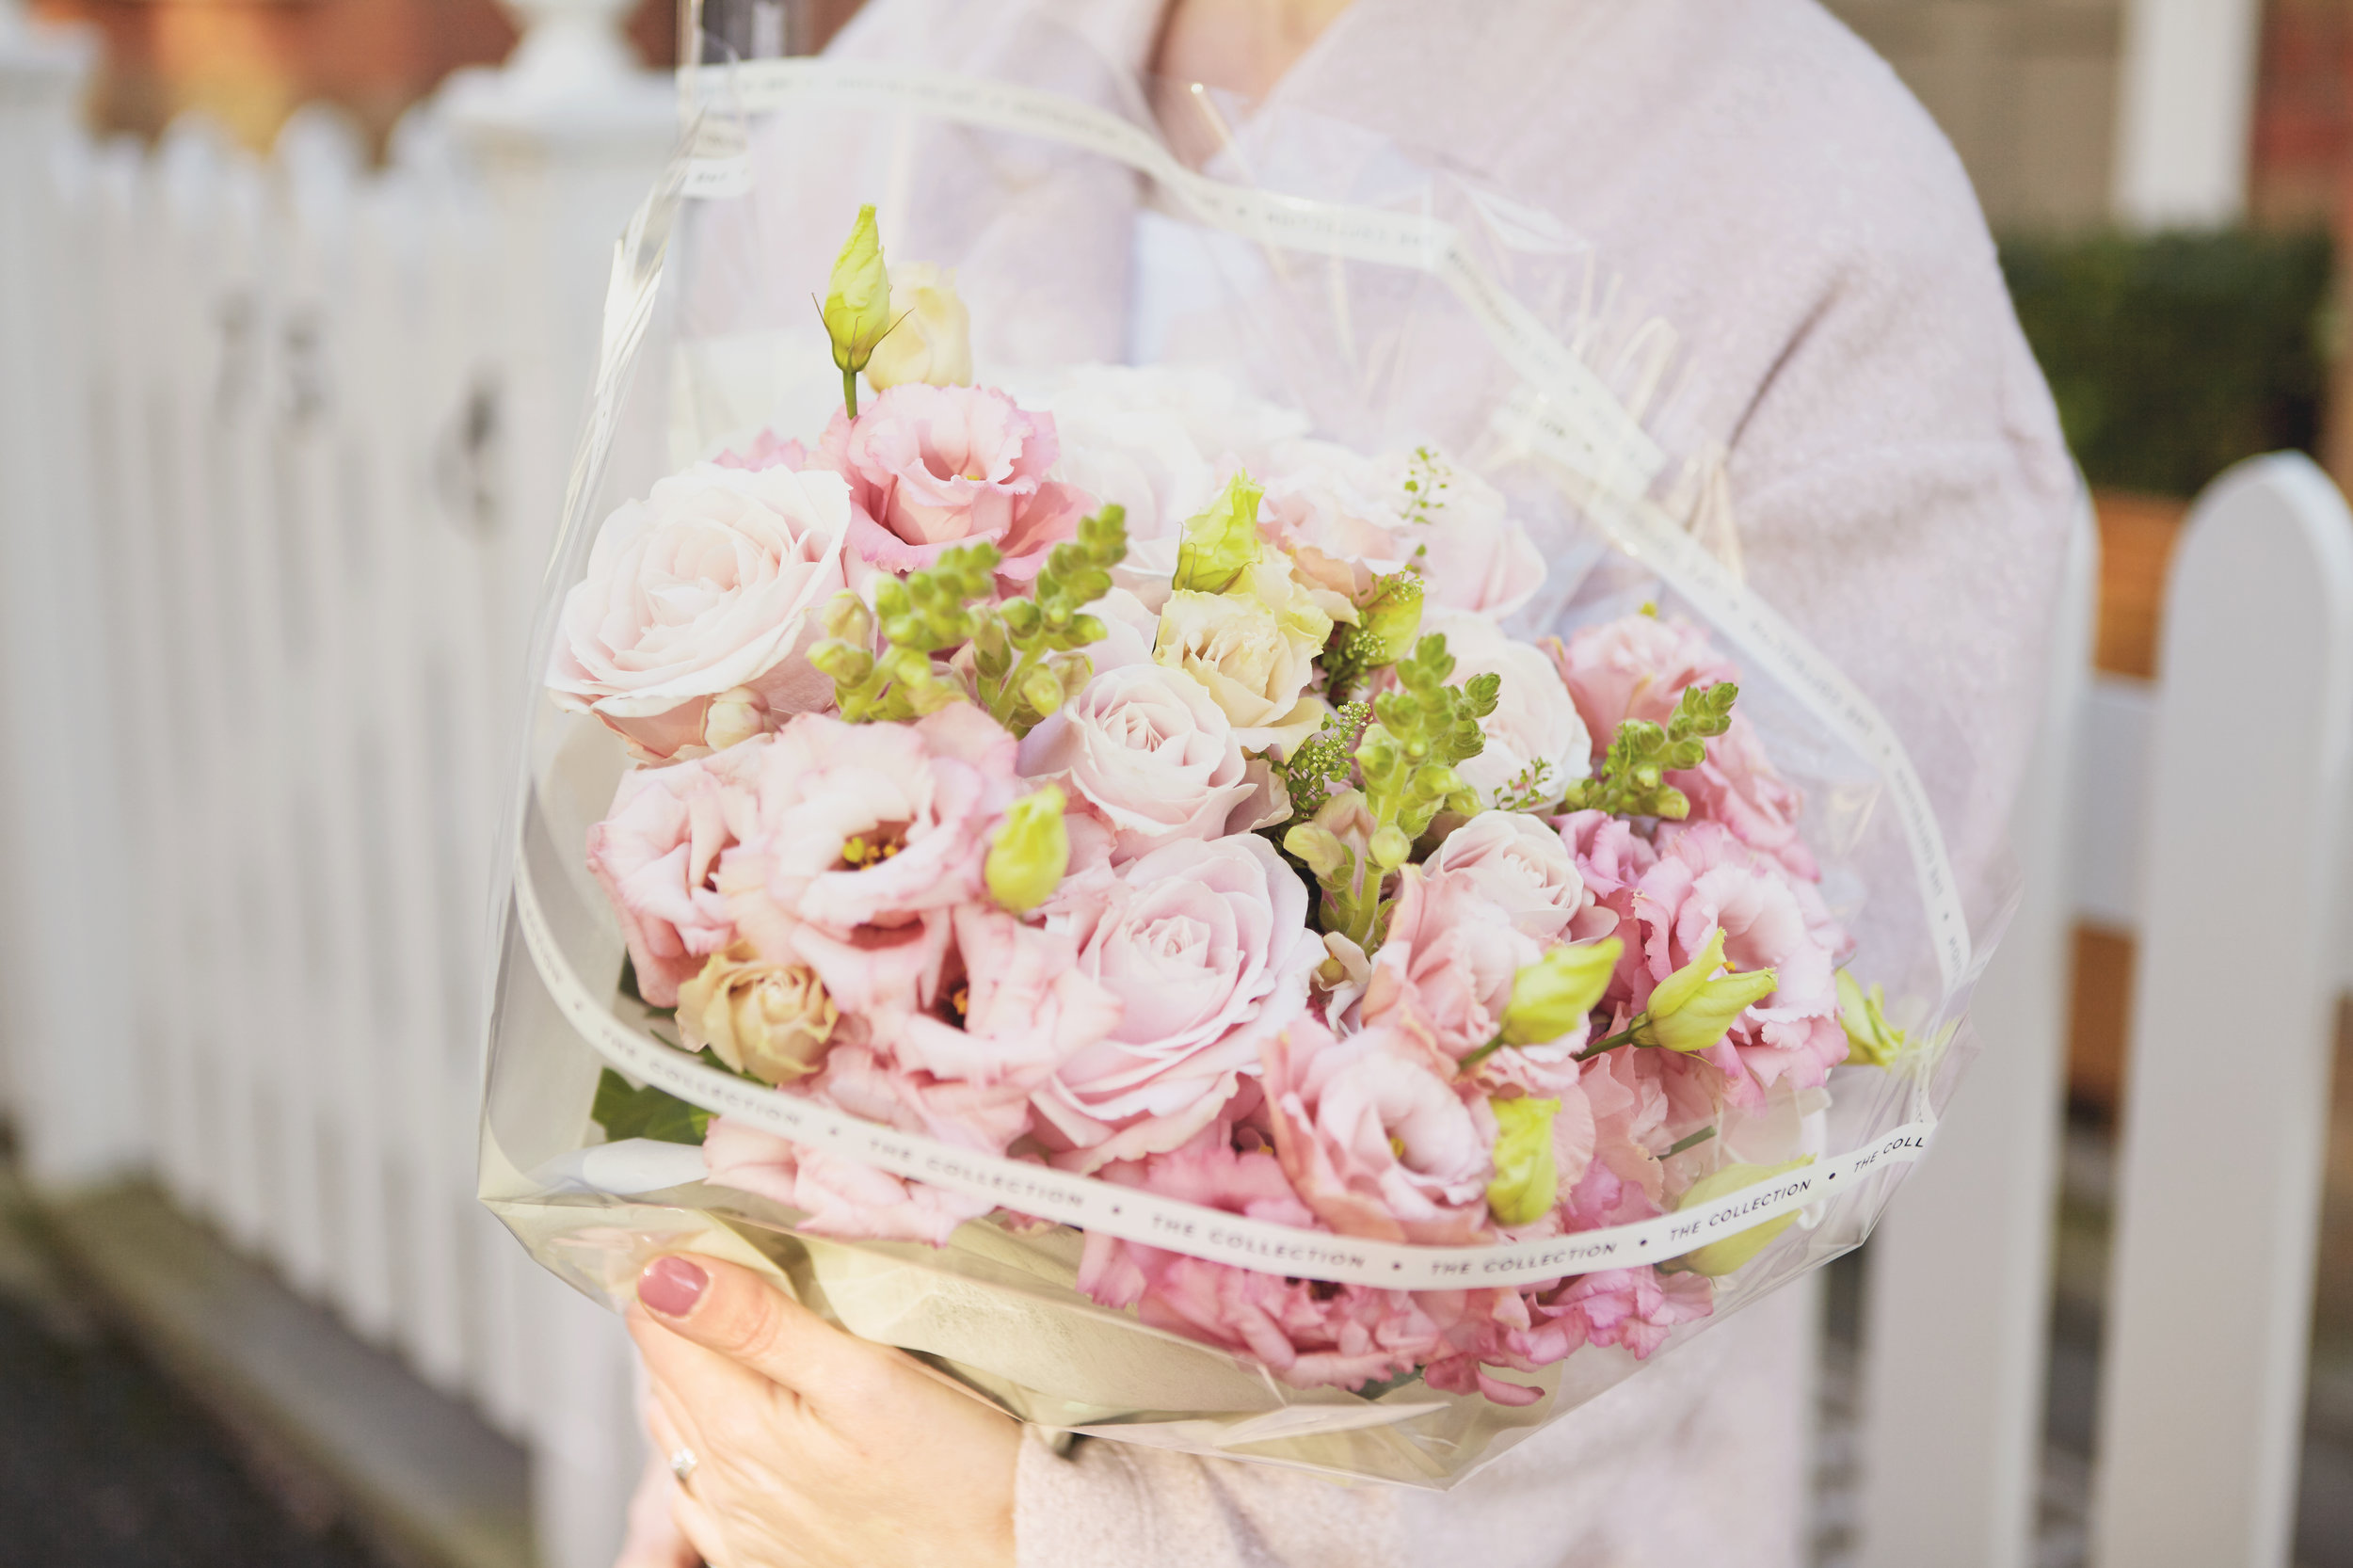 Marks and Spencer Gifting Flowers